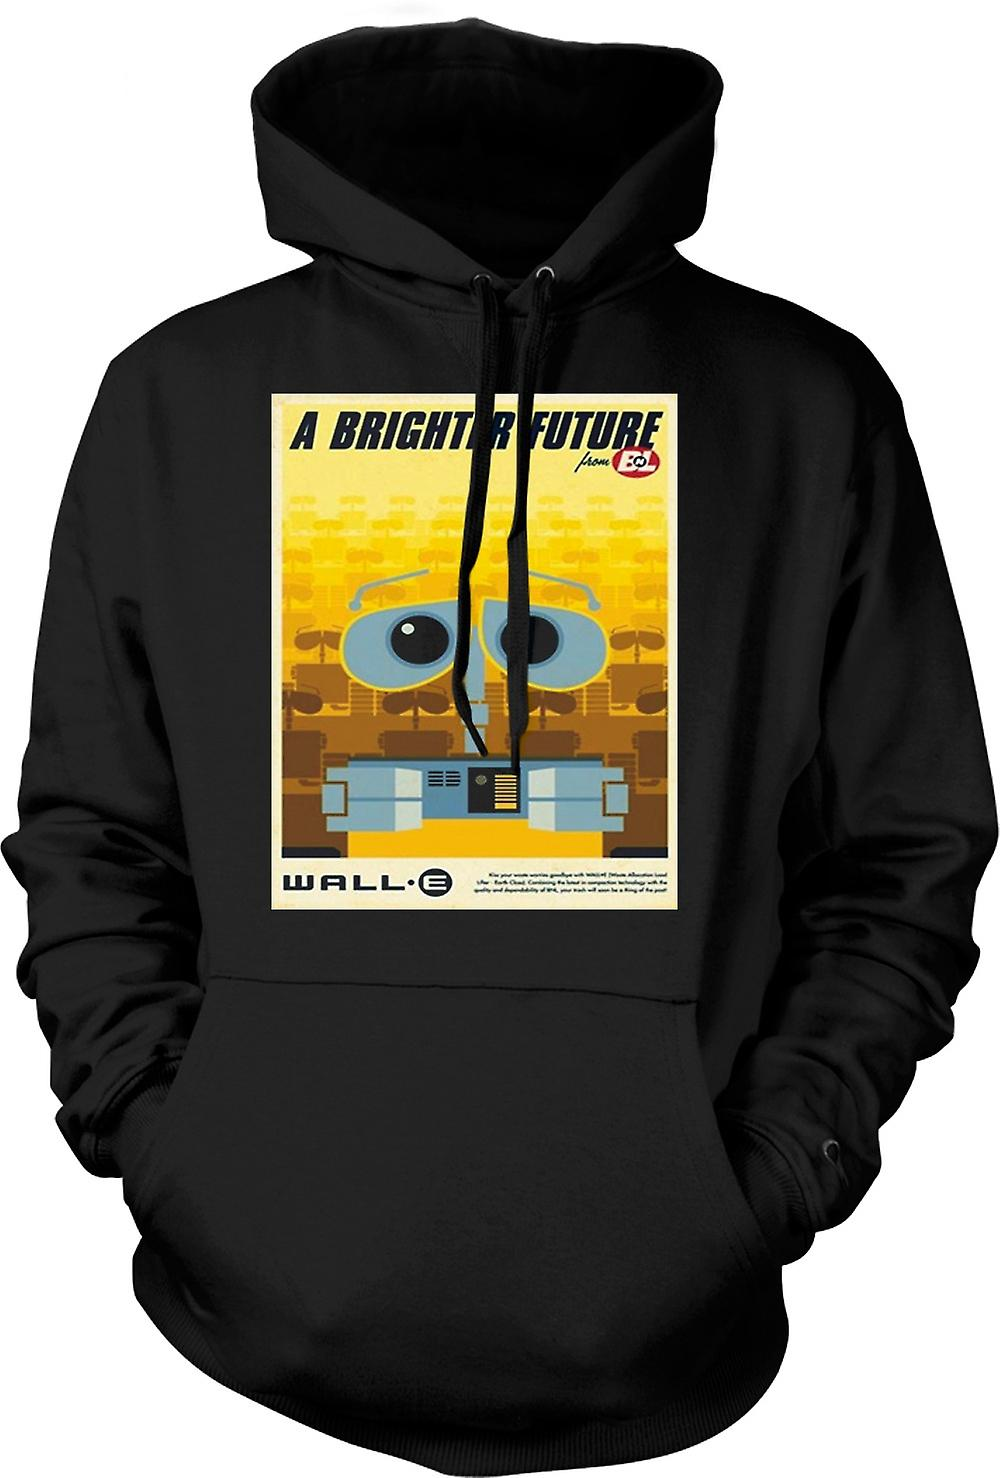 Mens Hoodie - Wall-E - Brighter Future - Robot